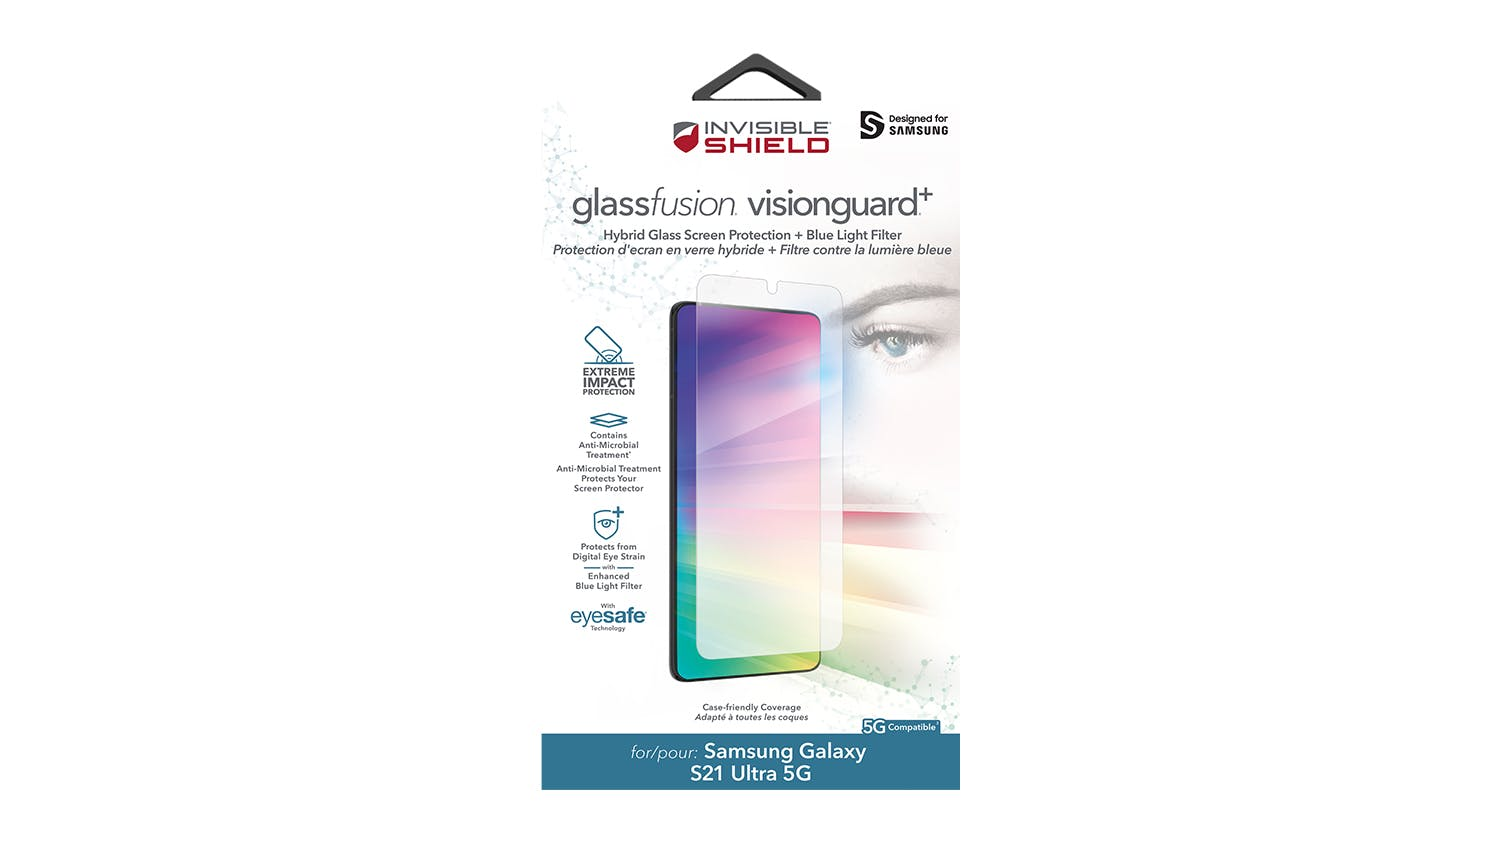 Zagg InvisibleShield GlassFusion VisionGuard+ Screen Protector for Samsung Galaxy S21 Ultra 5G